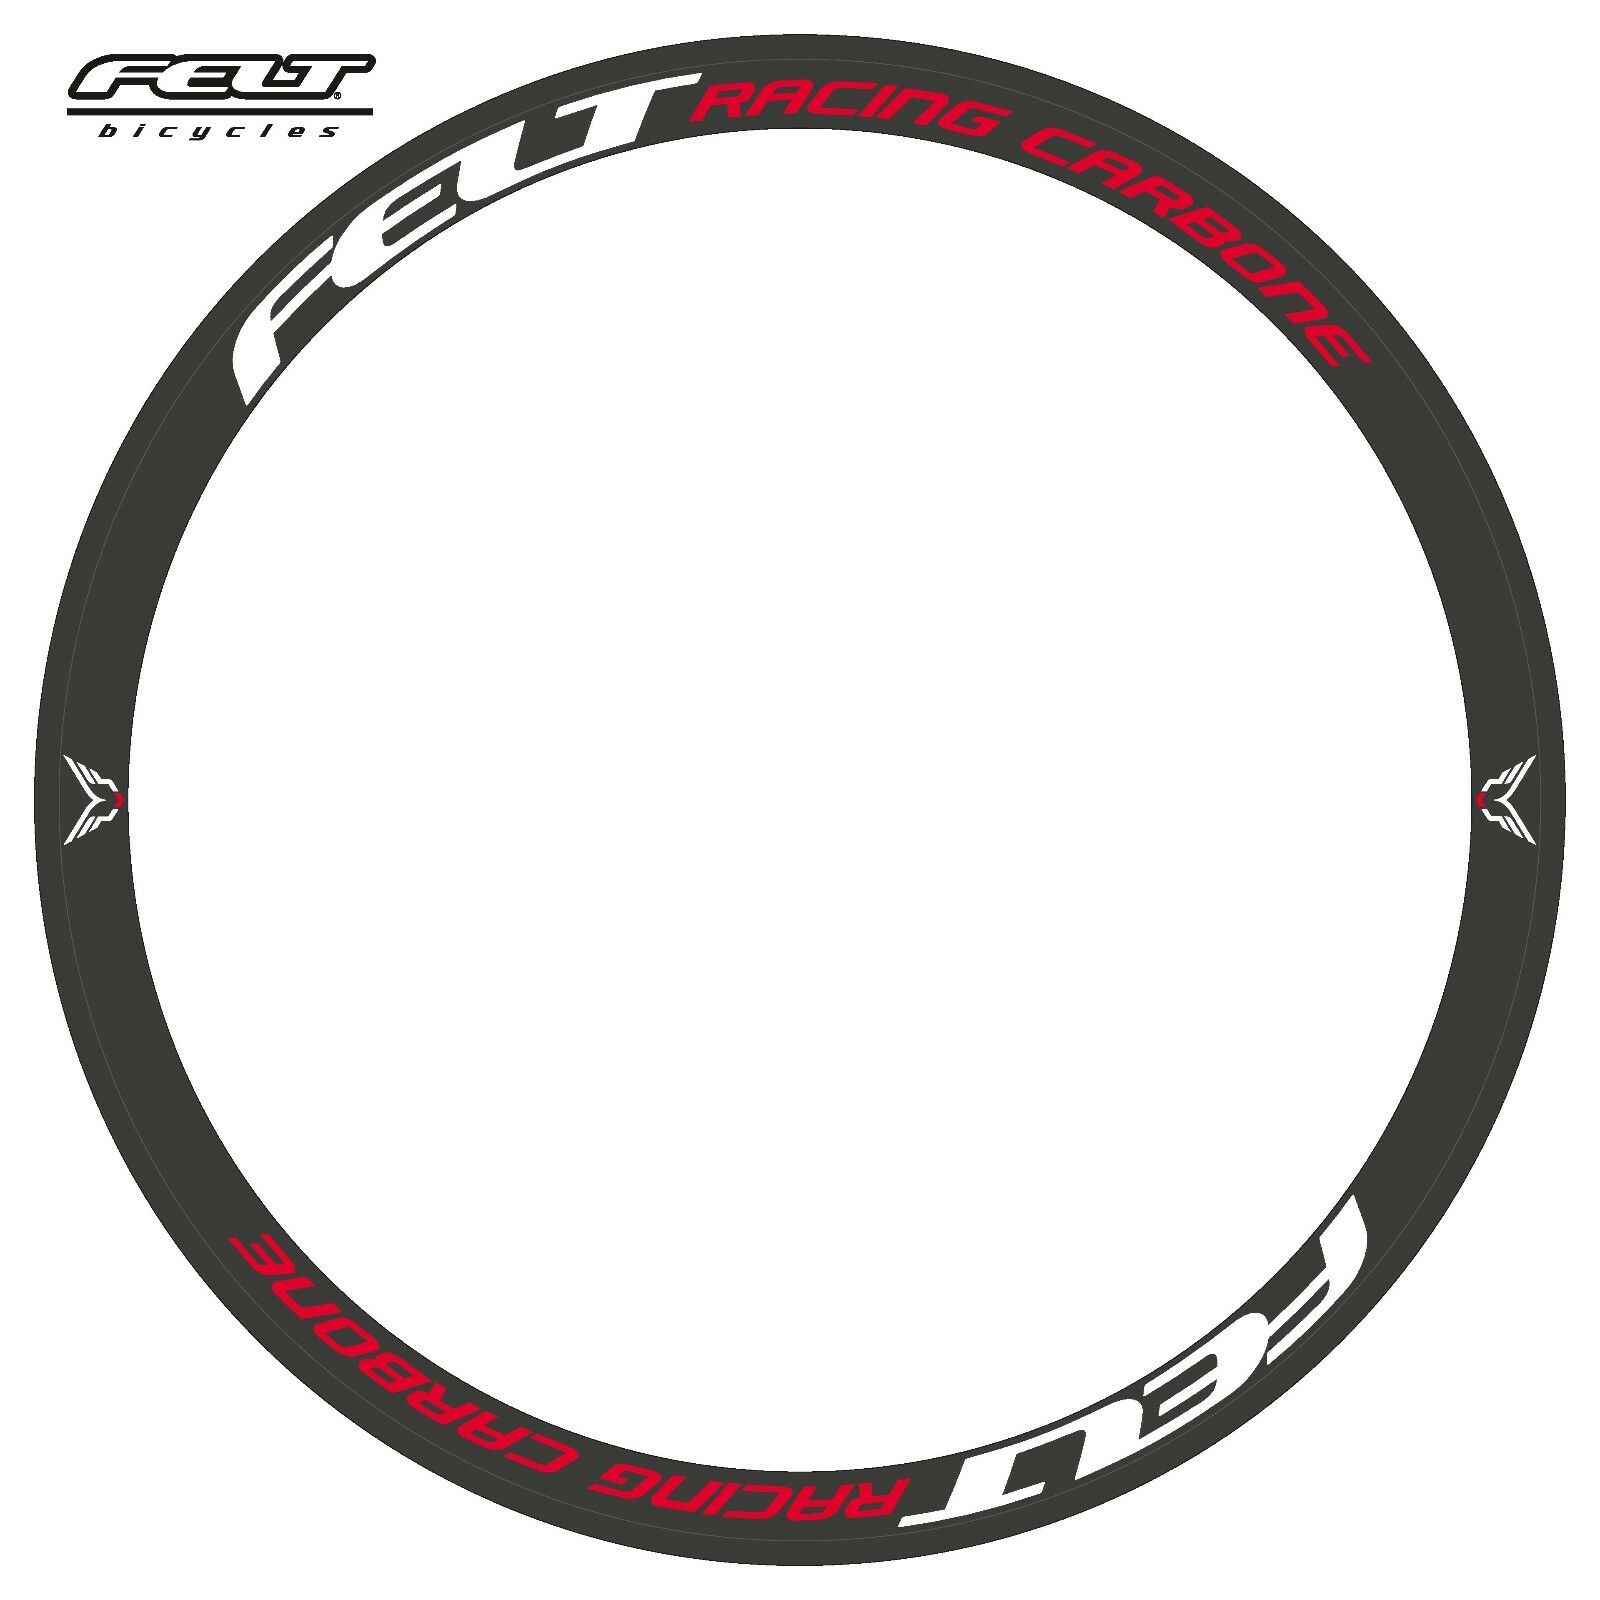 FELT RACING CARBONE REPLACEMENT RIM DECAL SET FOR 38mm RIMS